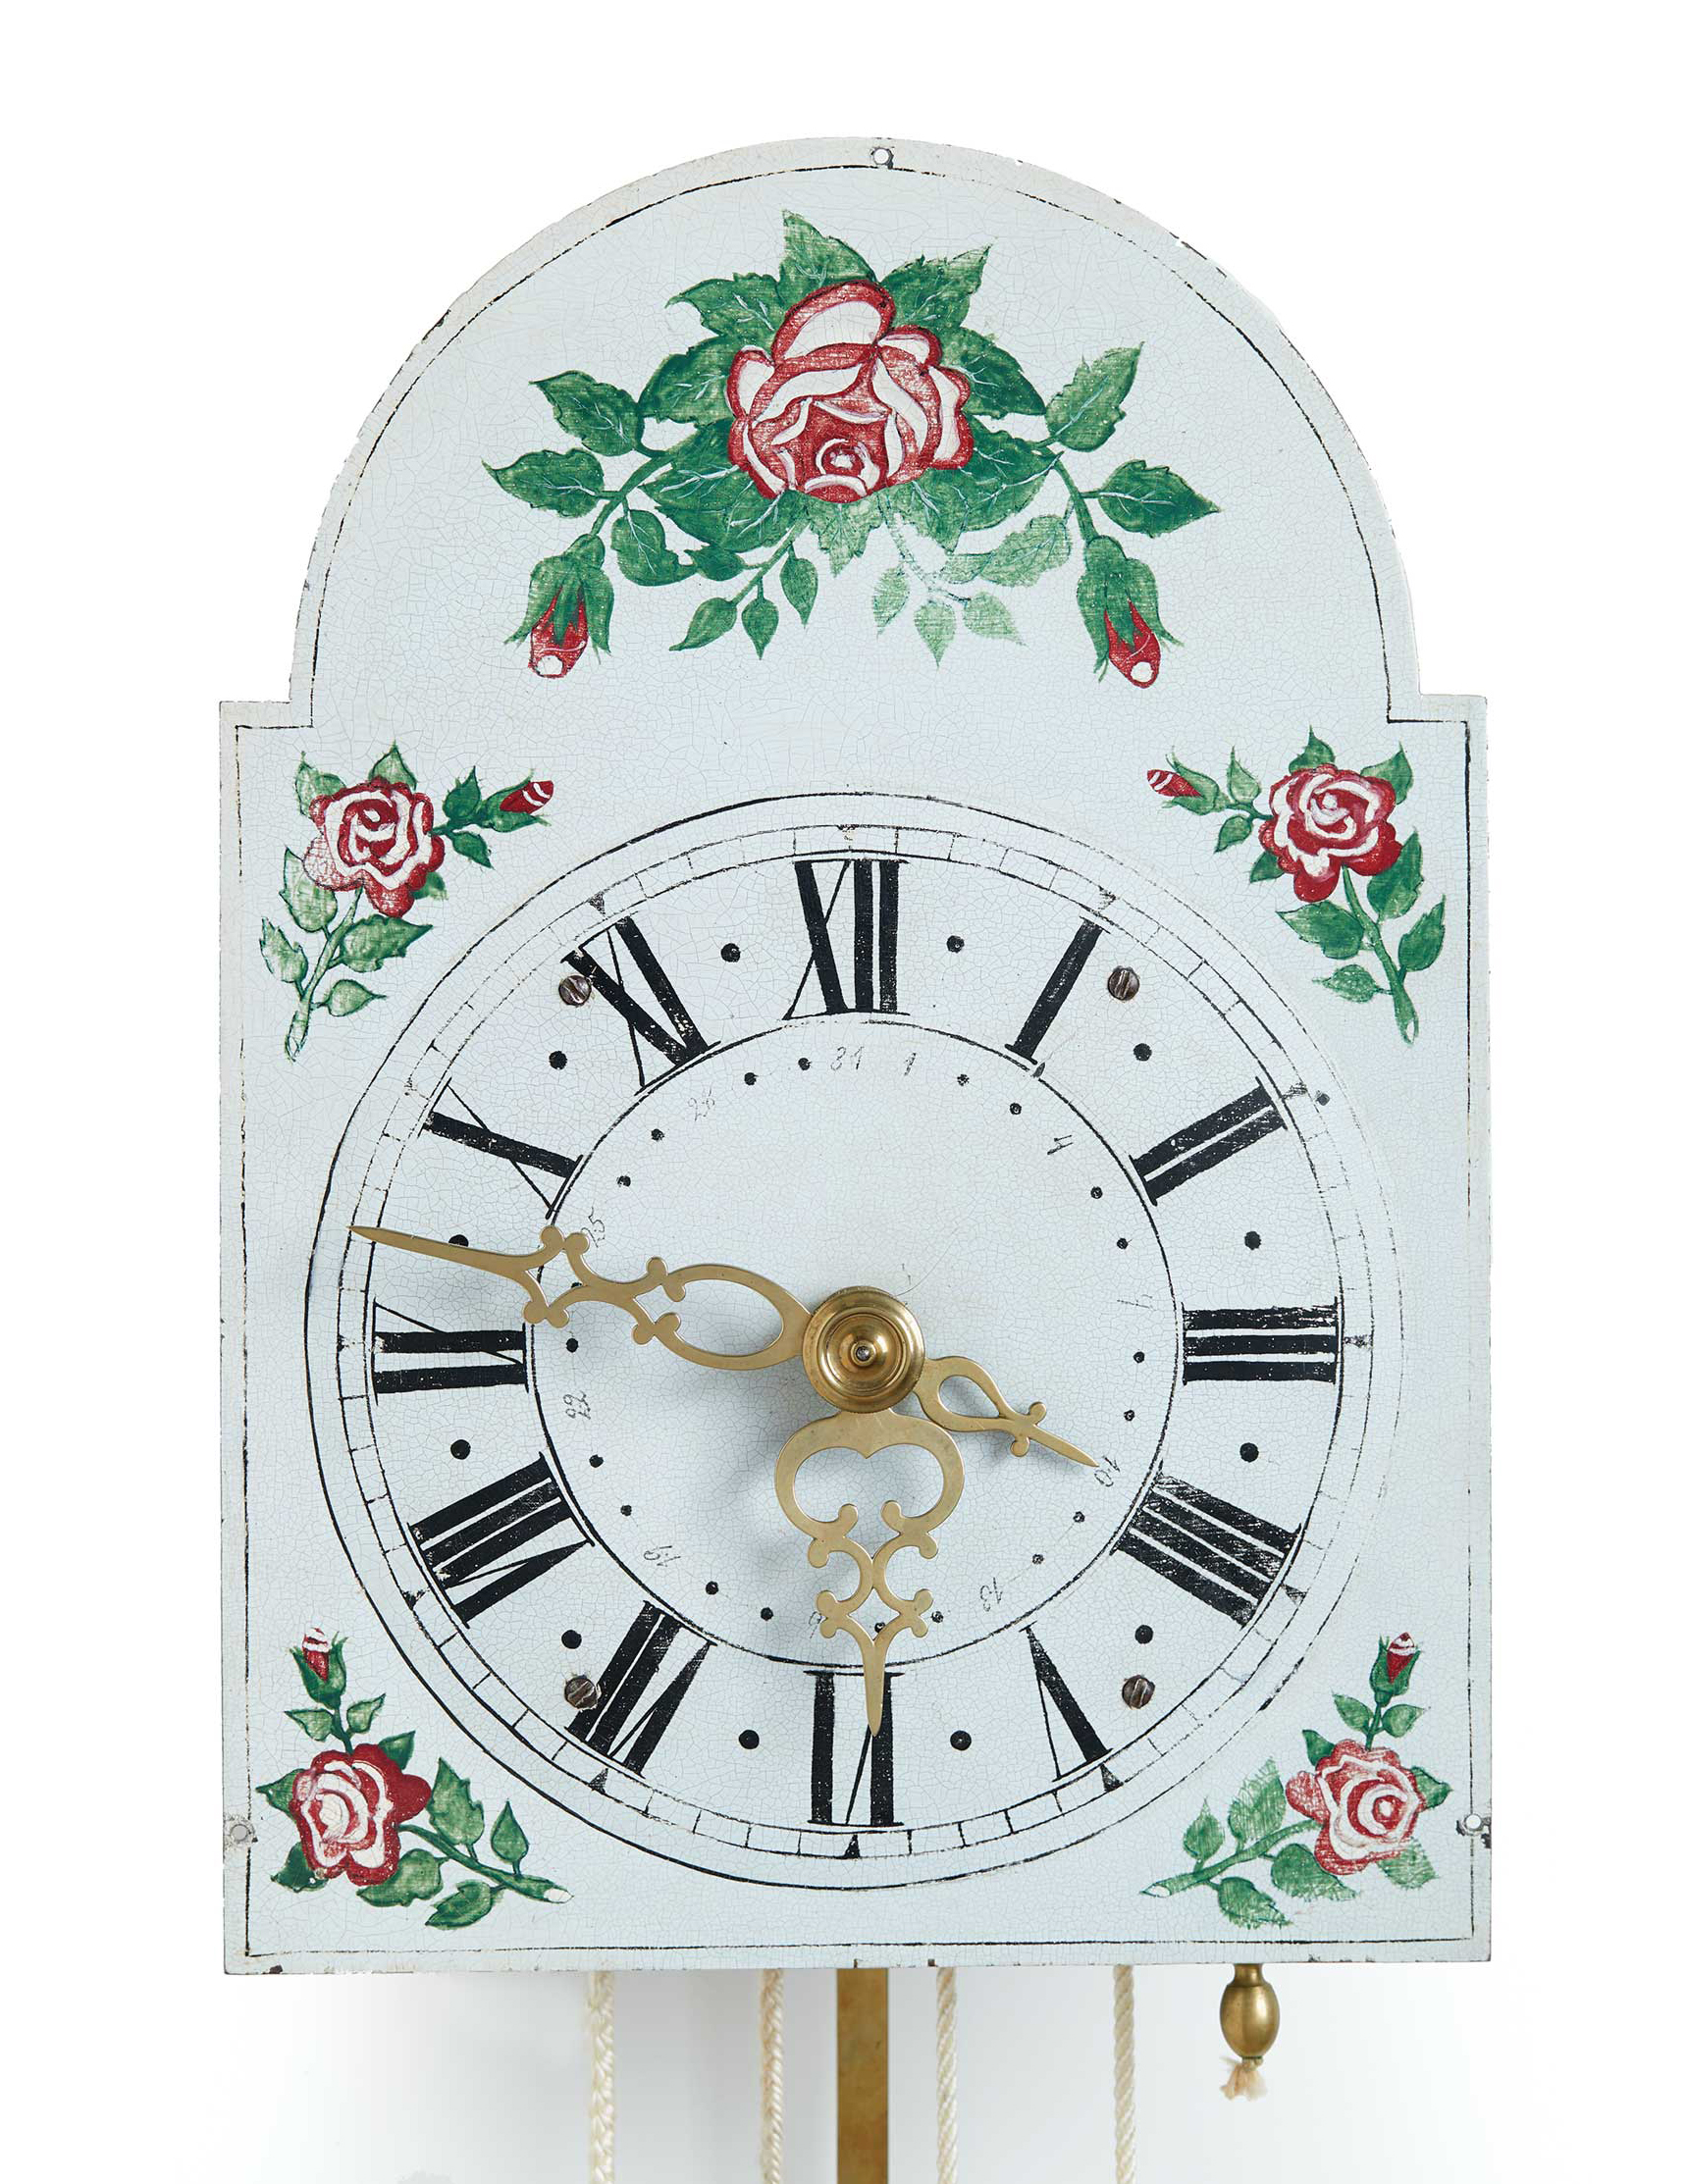 The flaking paint was a common issue for wall clocks in the climates of the Russian steppe and Canadian prairies.